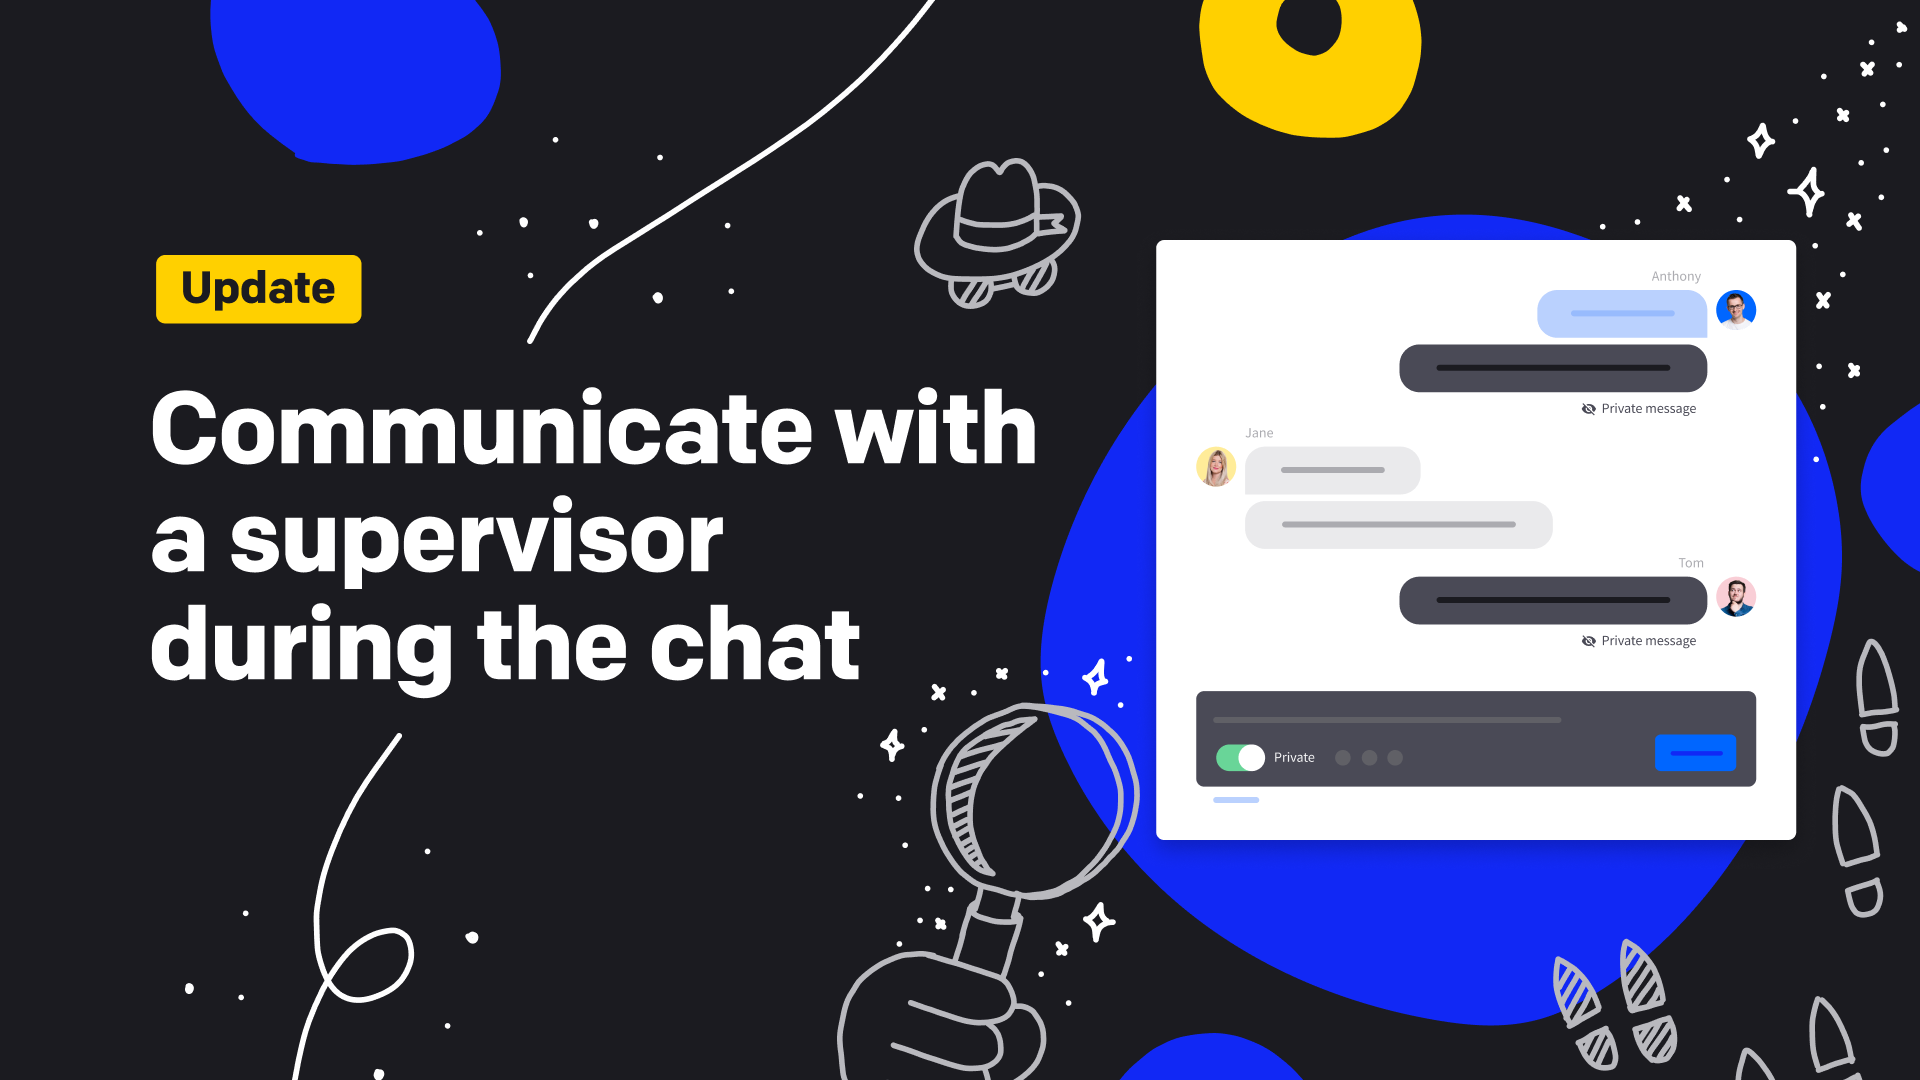 Communicate with a supervisor during the chat